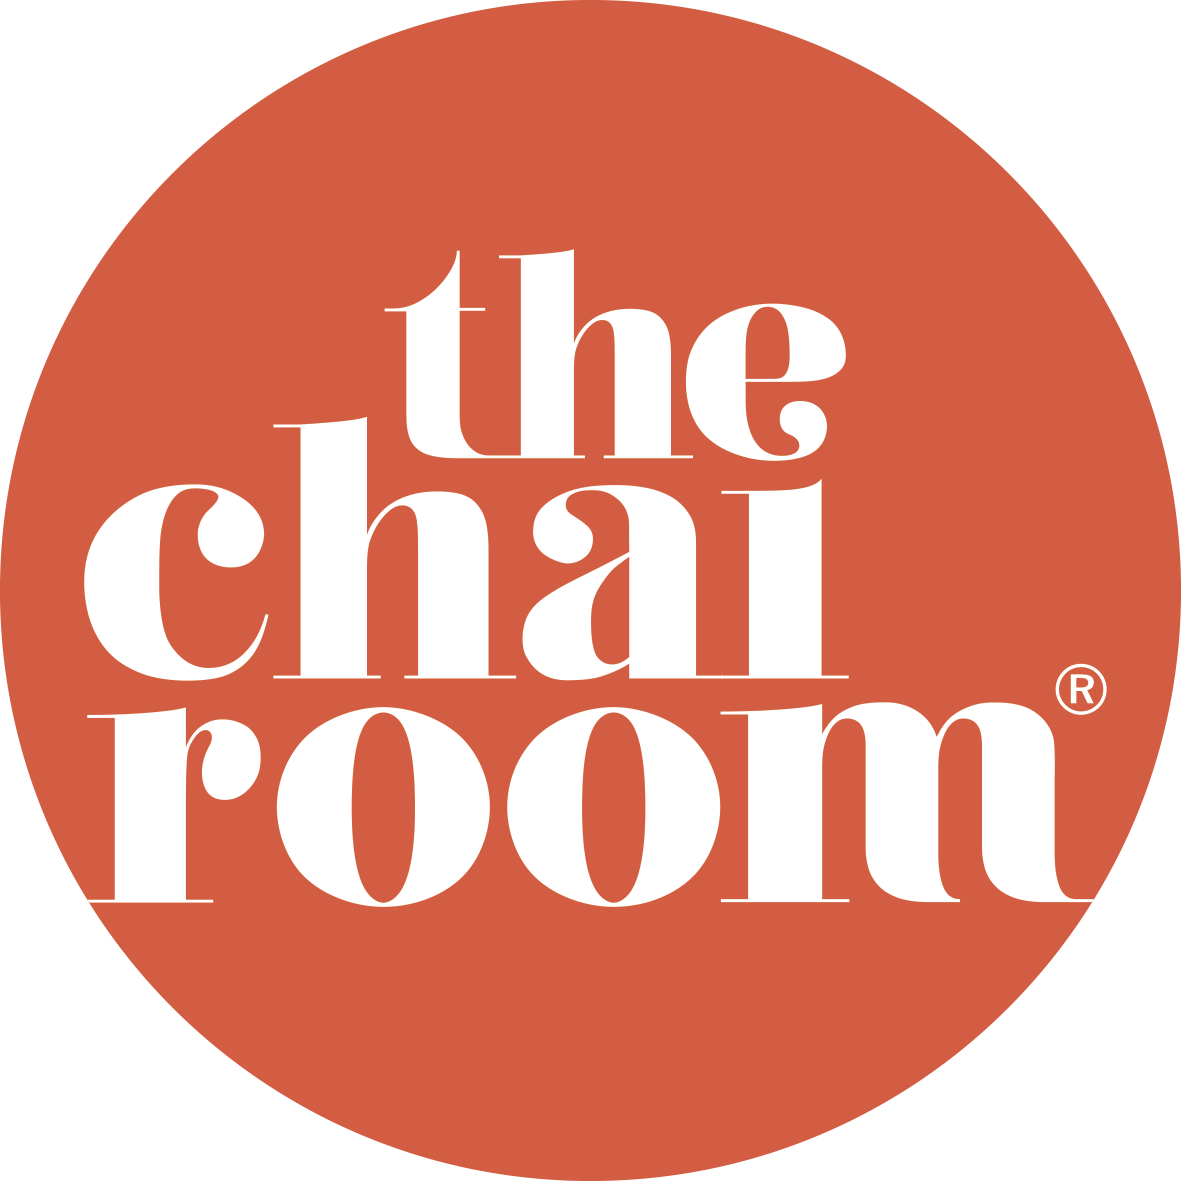 - The Chai Room is generously supporting Collab by providing delicious, spicy chai made from hand dried fresh, raw ingredients. It's always the simple and pure things in life that are the best. The Chai Room is all about creating healthy, fragrant and re-energising chai for people to enjoy and share with those they love. Thank you to The Chai Room - we can't wait to share some silky chai with you!